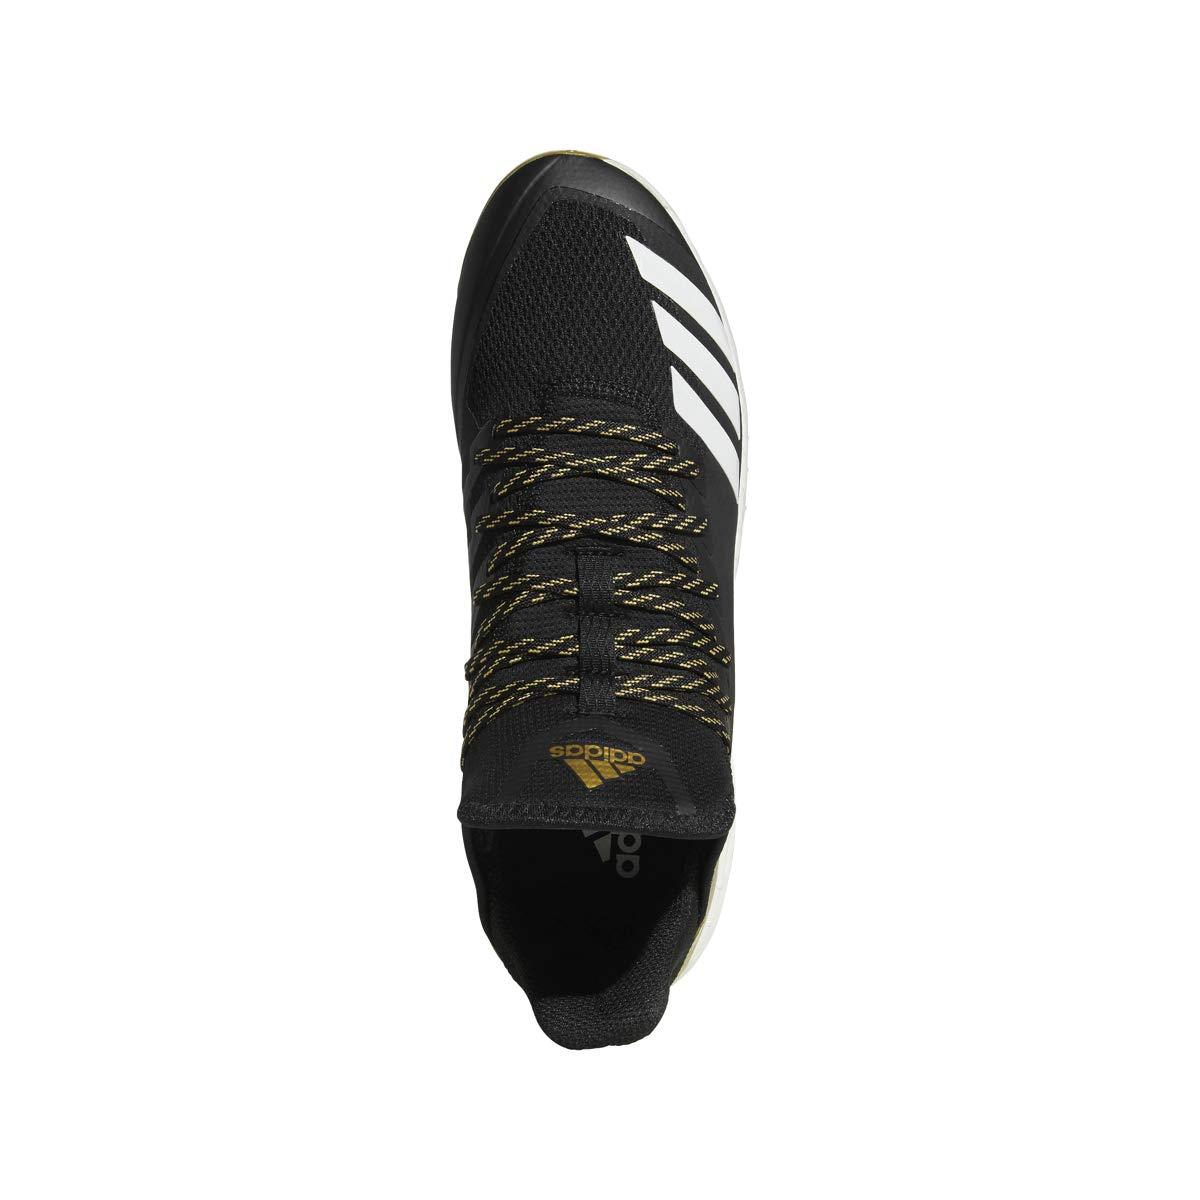 adidas Icon 4 Cleat - Men's Baseball 10 Black/White/Carbon by adidas (Image #2)